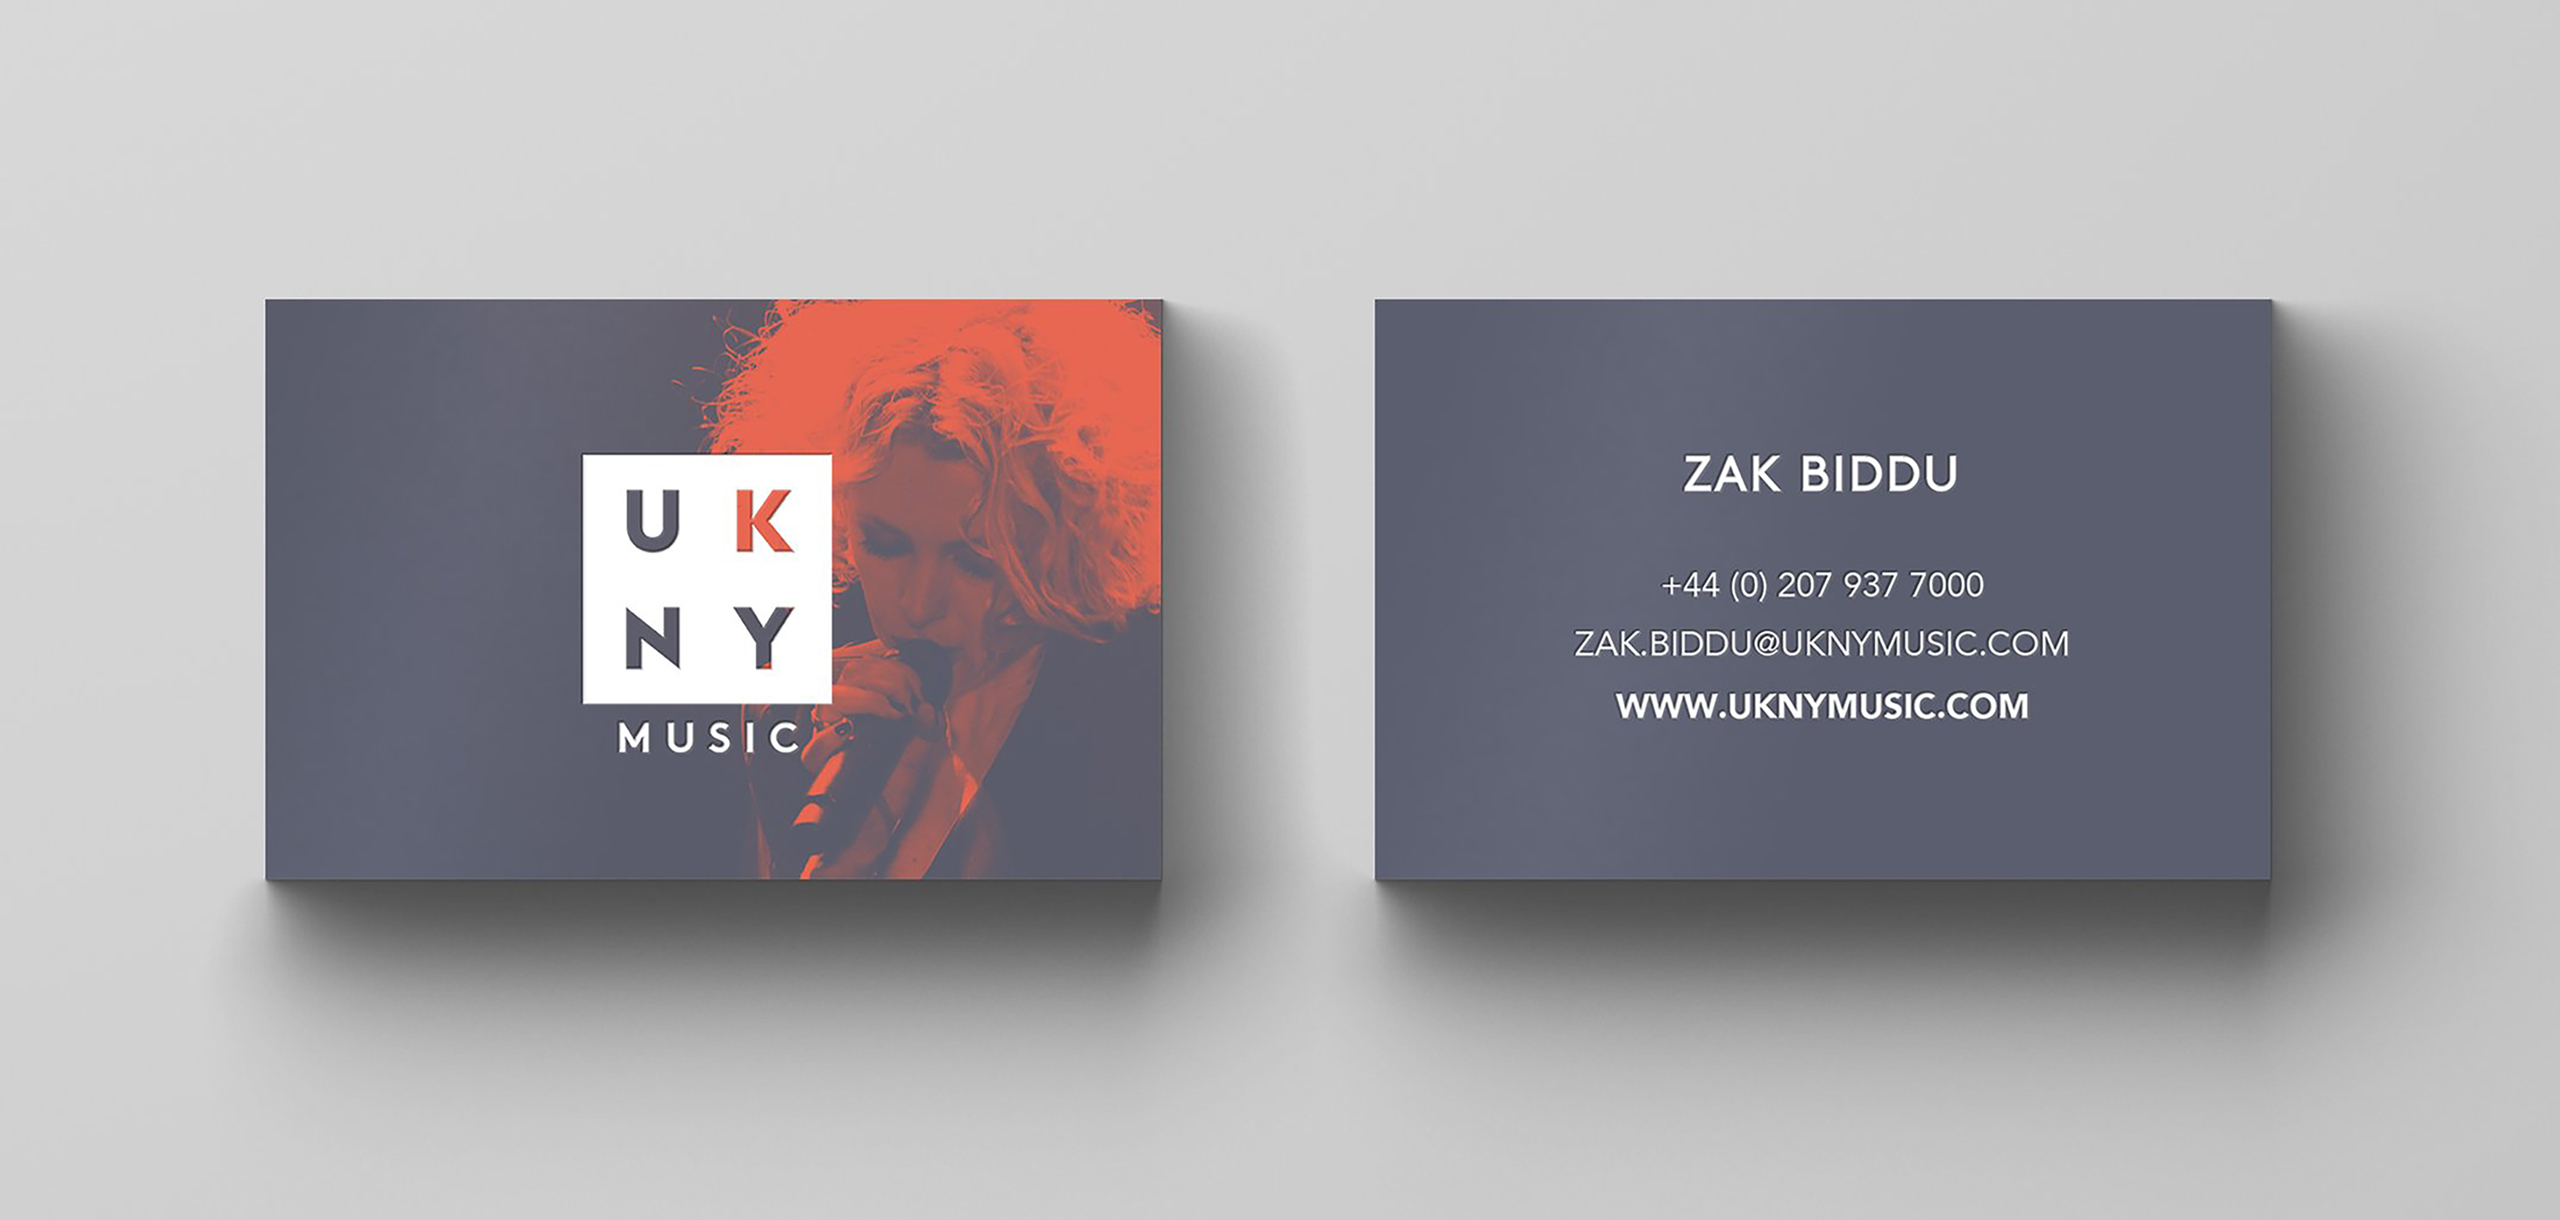 Business card mockup for entertainment brand UKNY, designed by White Bear Studio